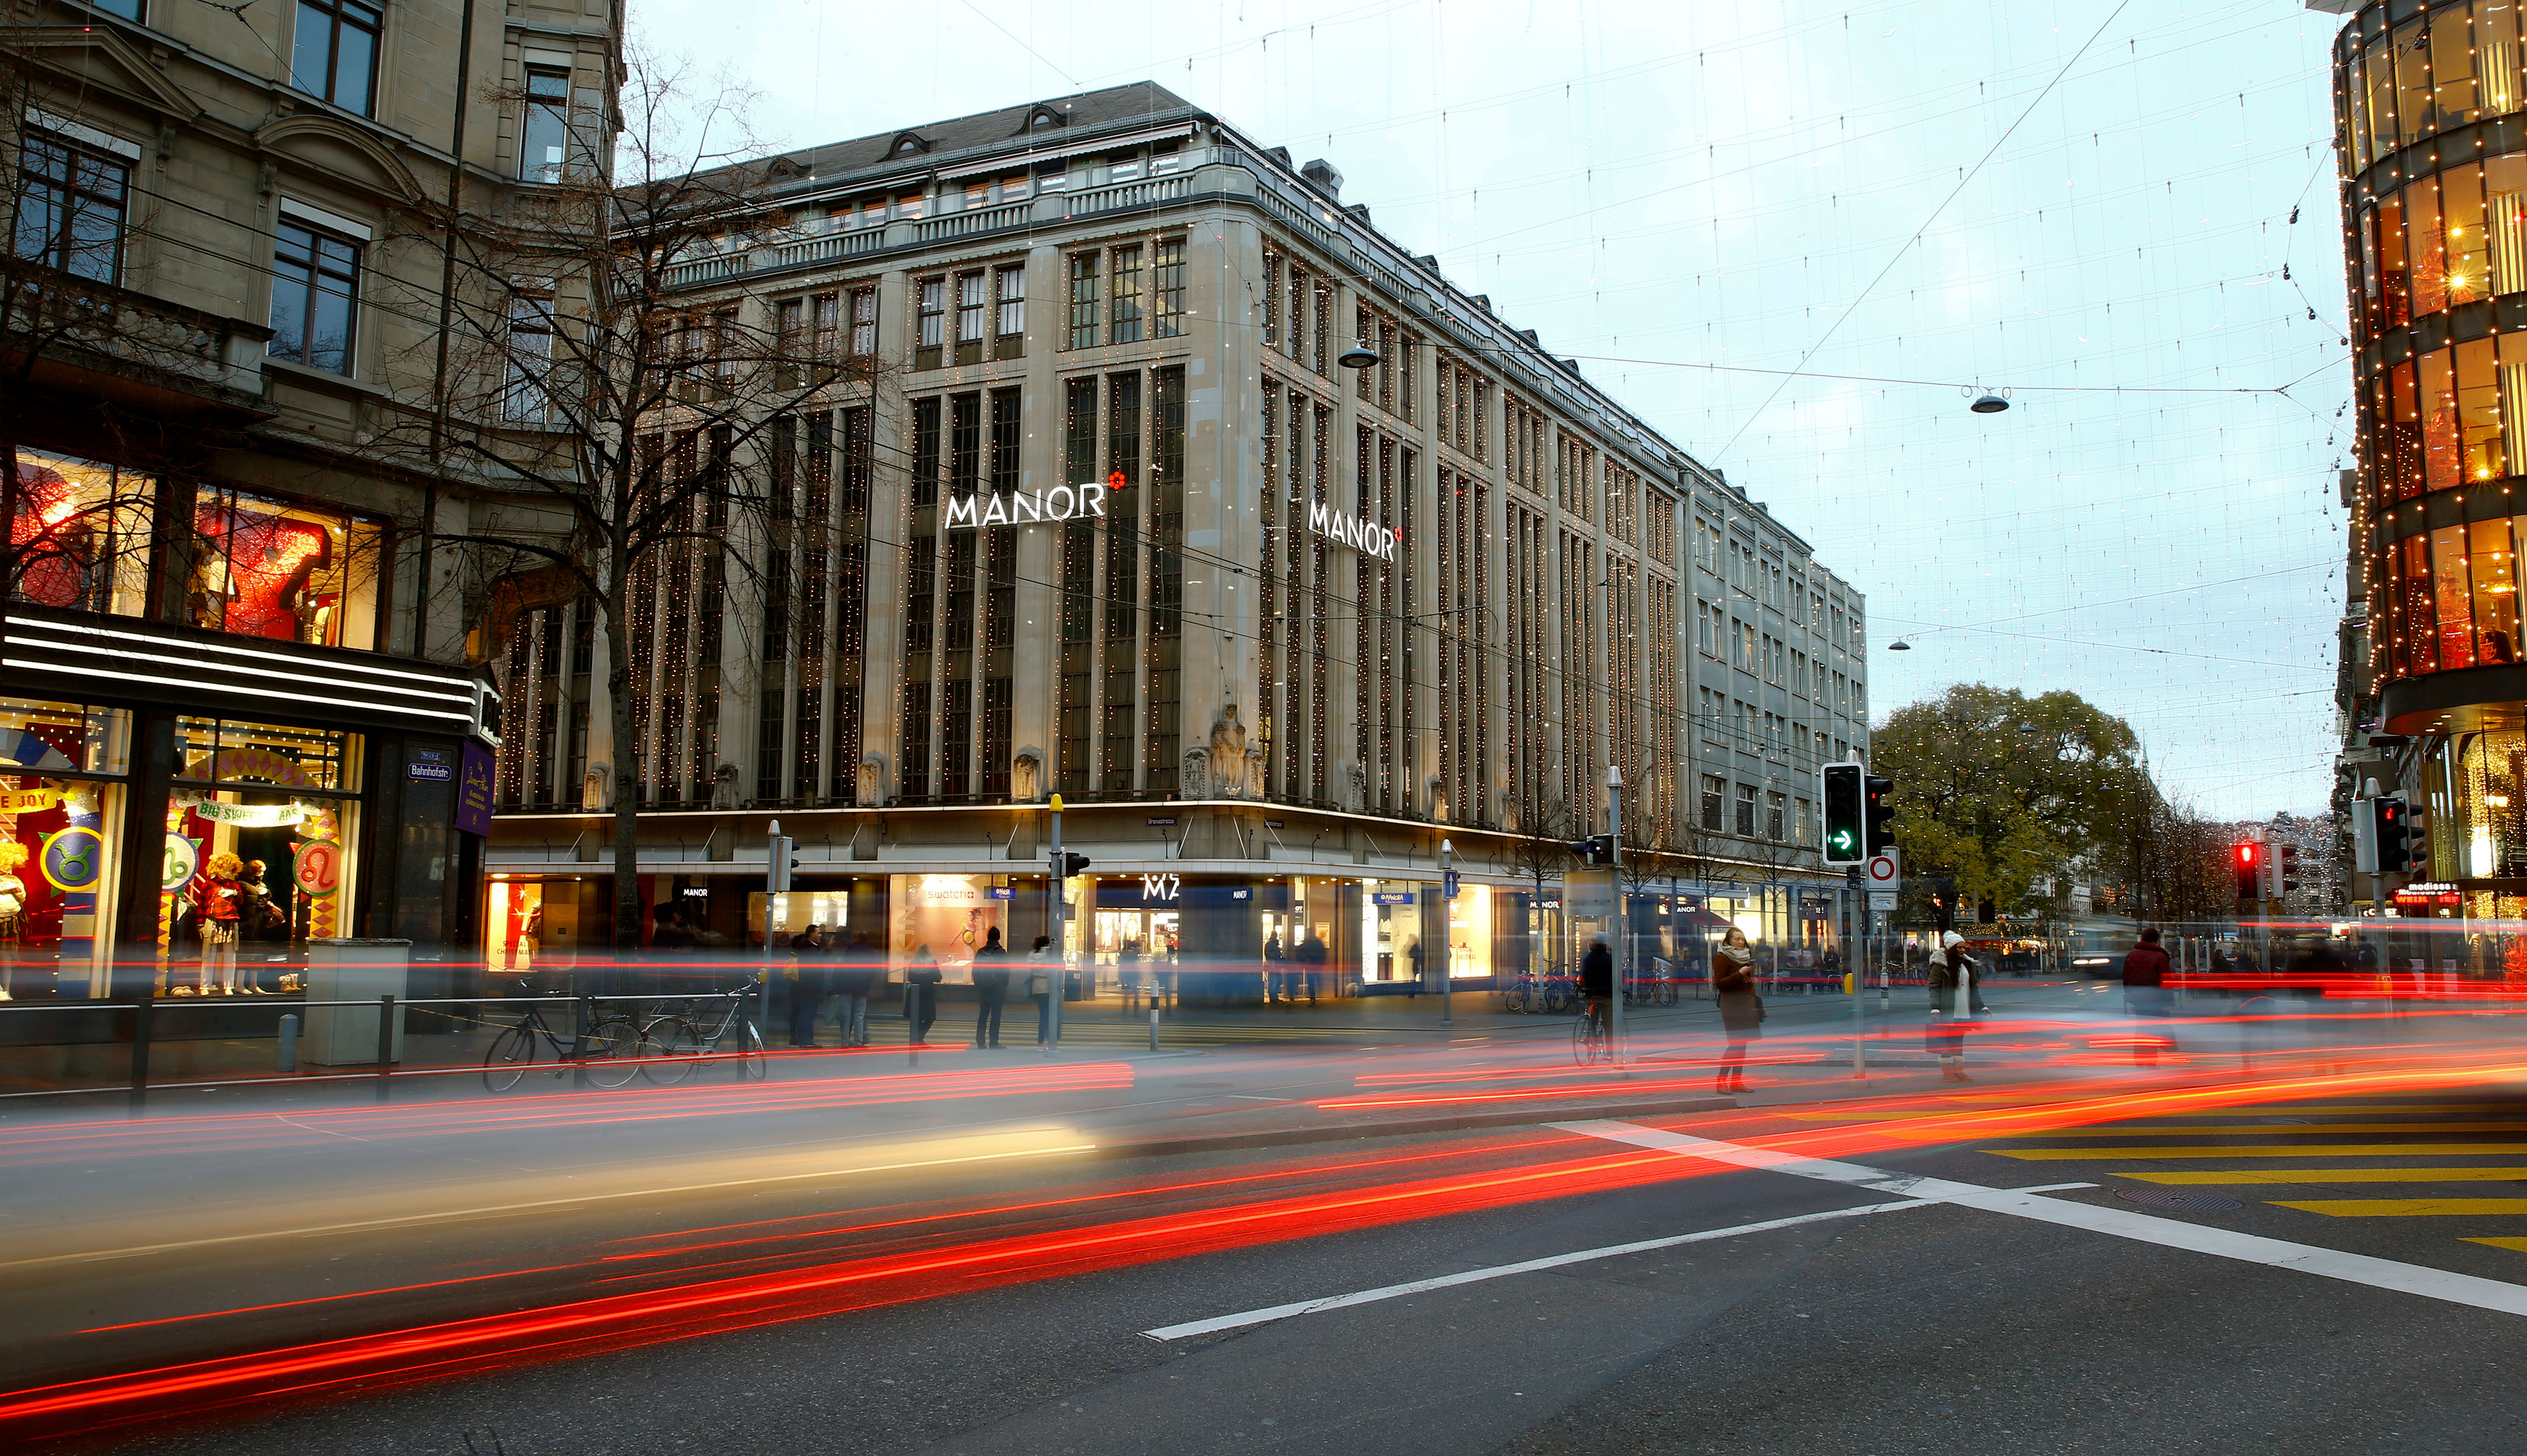 A longtime exposure shows traffic flowing in front of the Manor department store at the Bahnhofstrasse shopping street